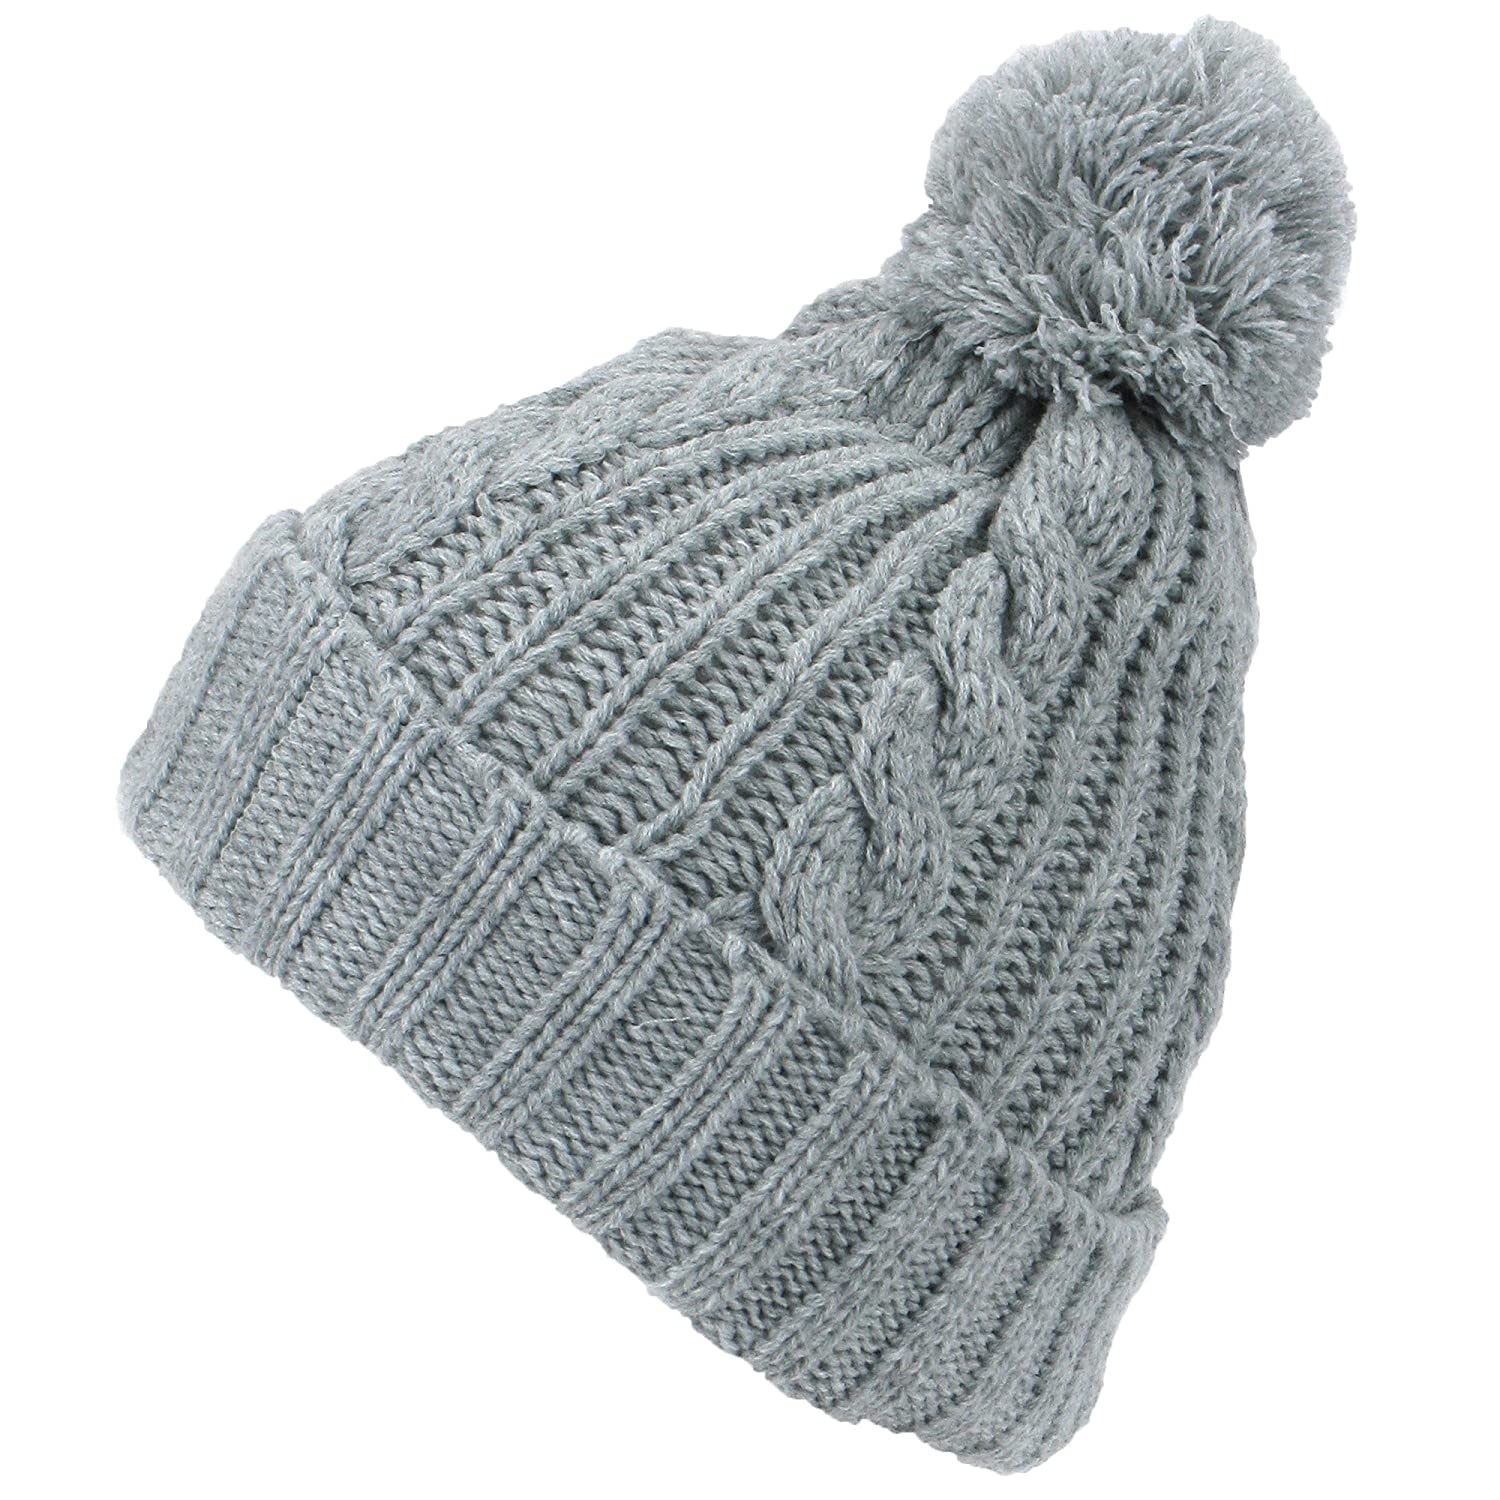 056ca76960d Hawkins GREY CABLE KNIT BOBBLE HAT WARM WINTER BEANIE with POM POM   Amazon.co.uk  Clothing